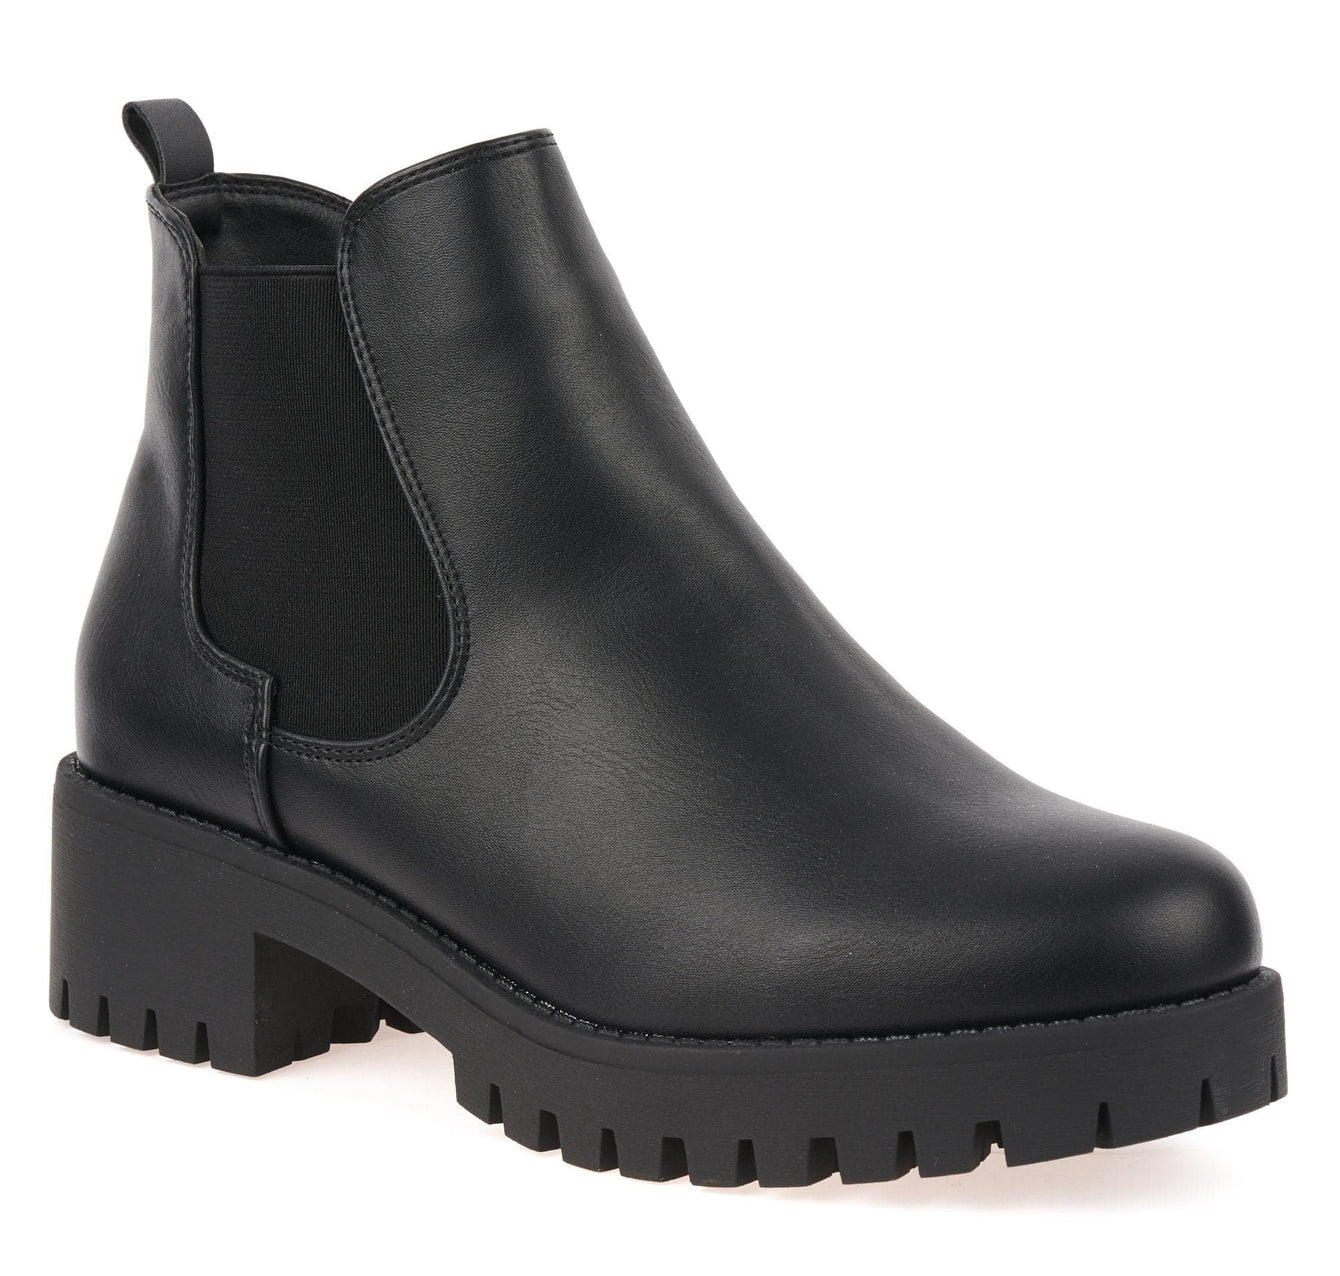 Elastic Cleated Sole Ankle Boot in Black Matt